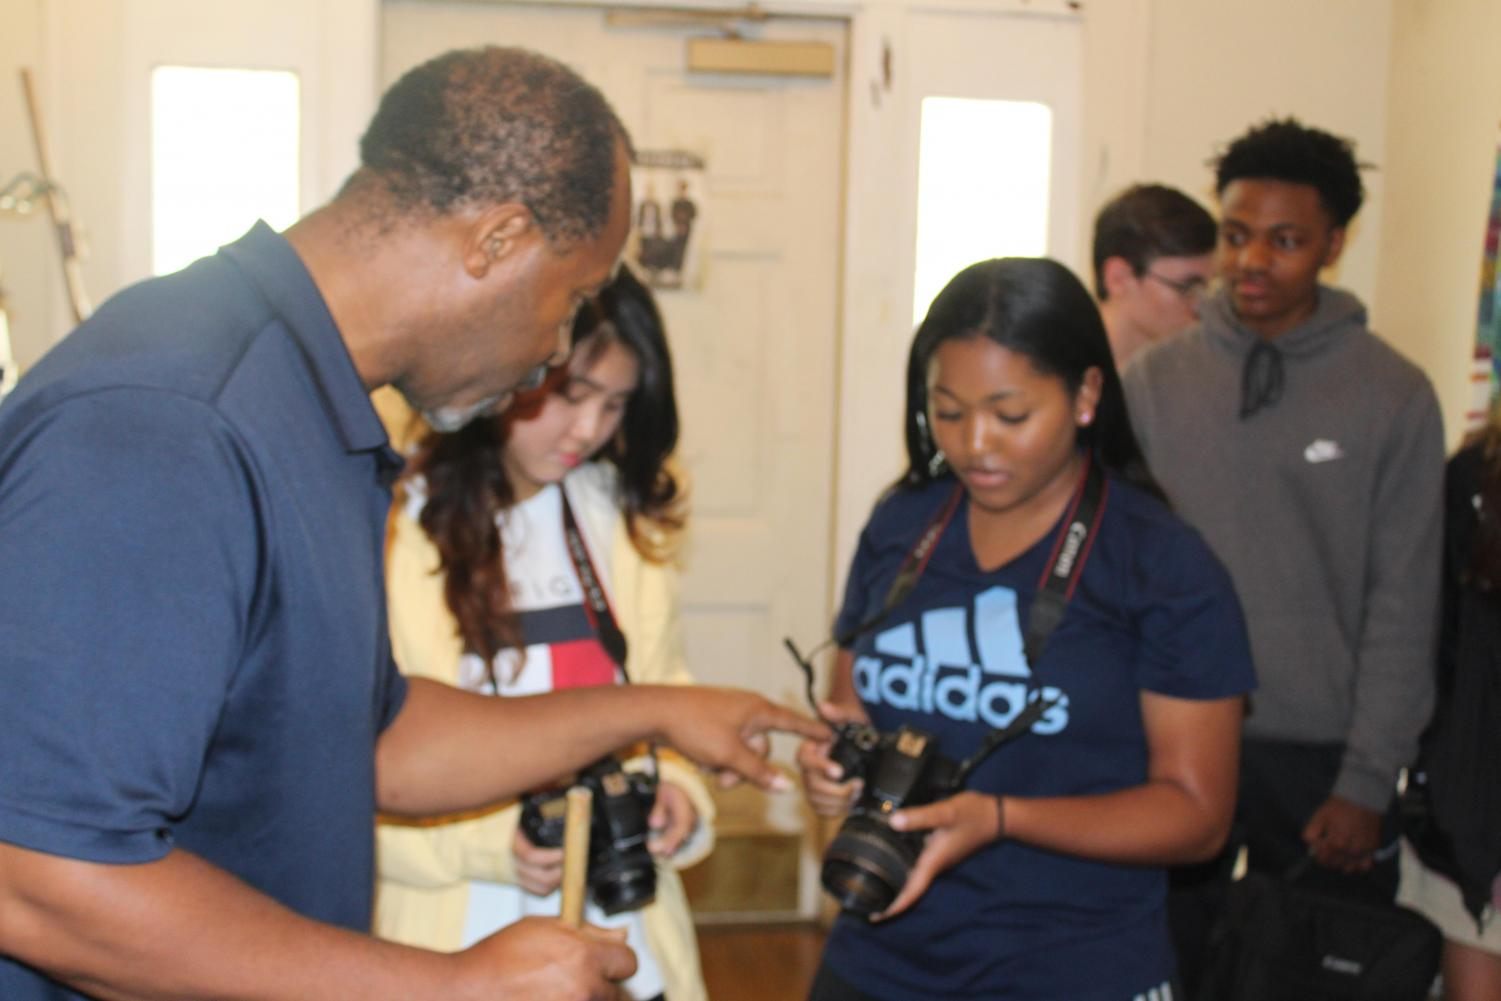 Mr. Lark demonstrates camera settings for students, Jasmine Stone and Carolyn Doan.